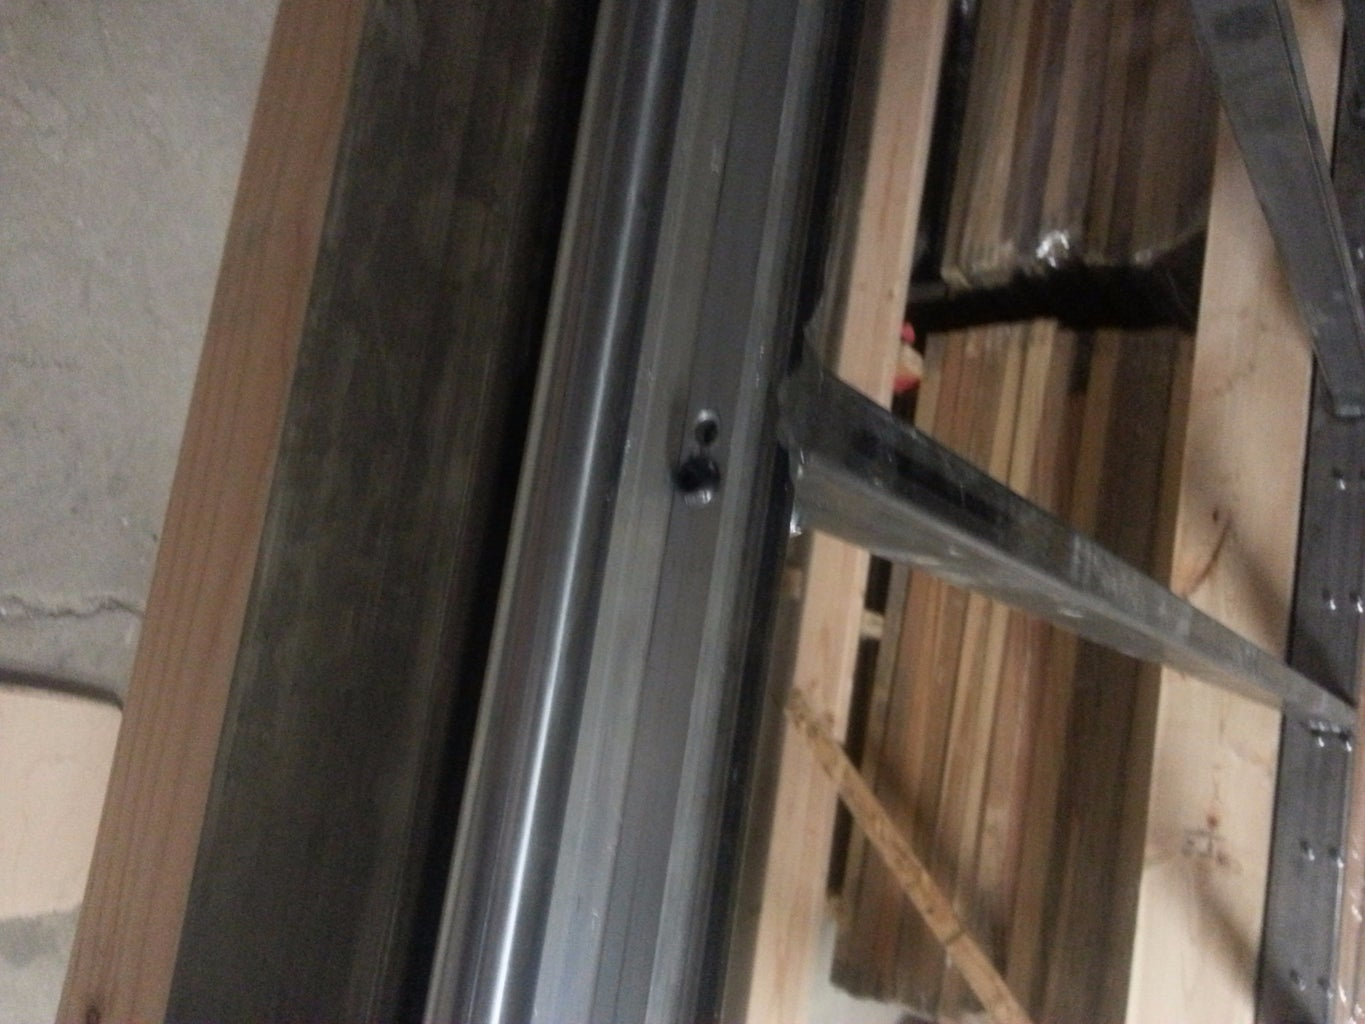 Attach the Y-axis Rails to the Steel Table